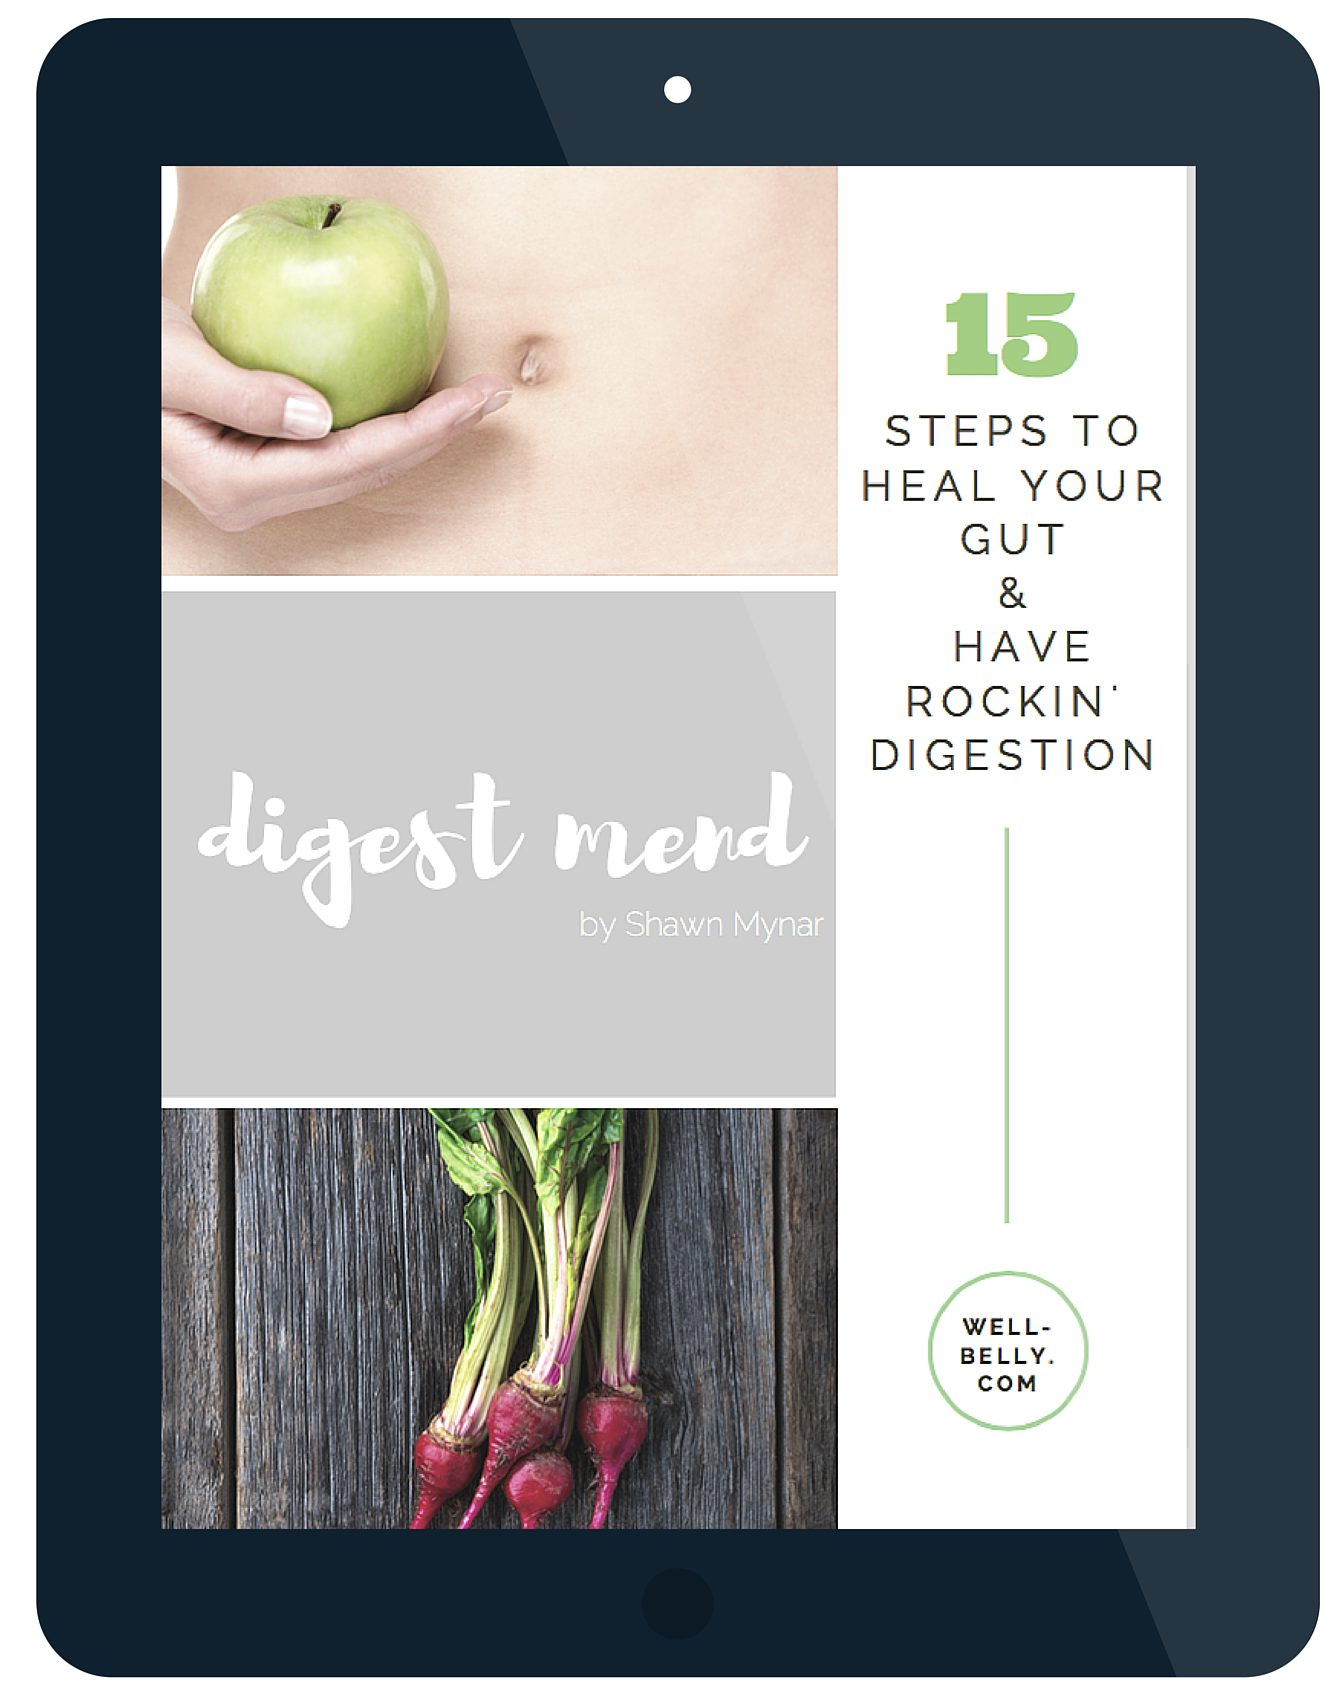 Download your FREE Digest Mend e-book and get my 15 top tips to heal your gut & get rockin' digestion!